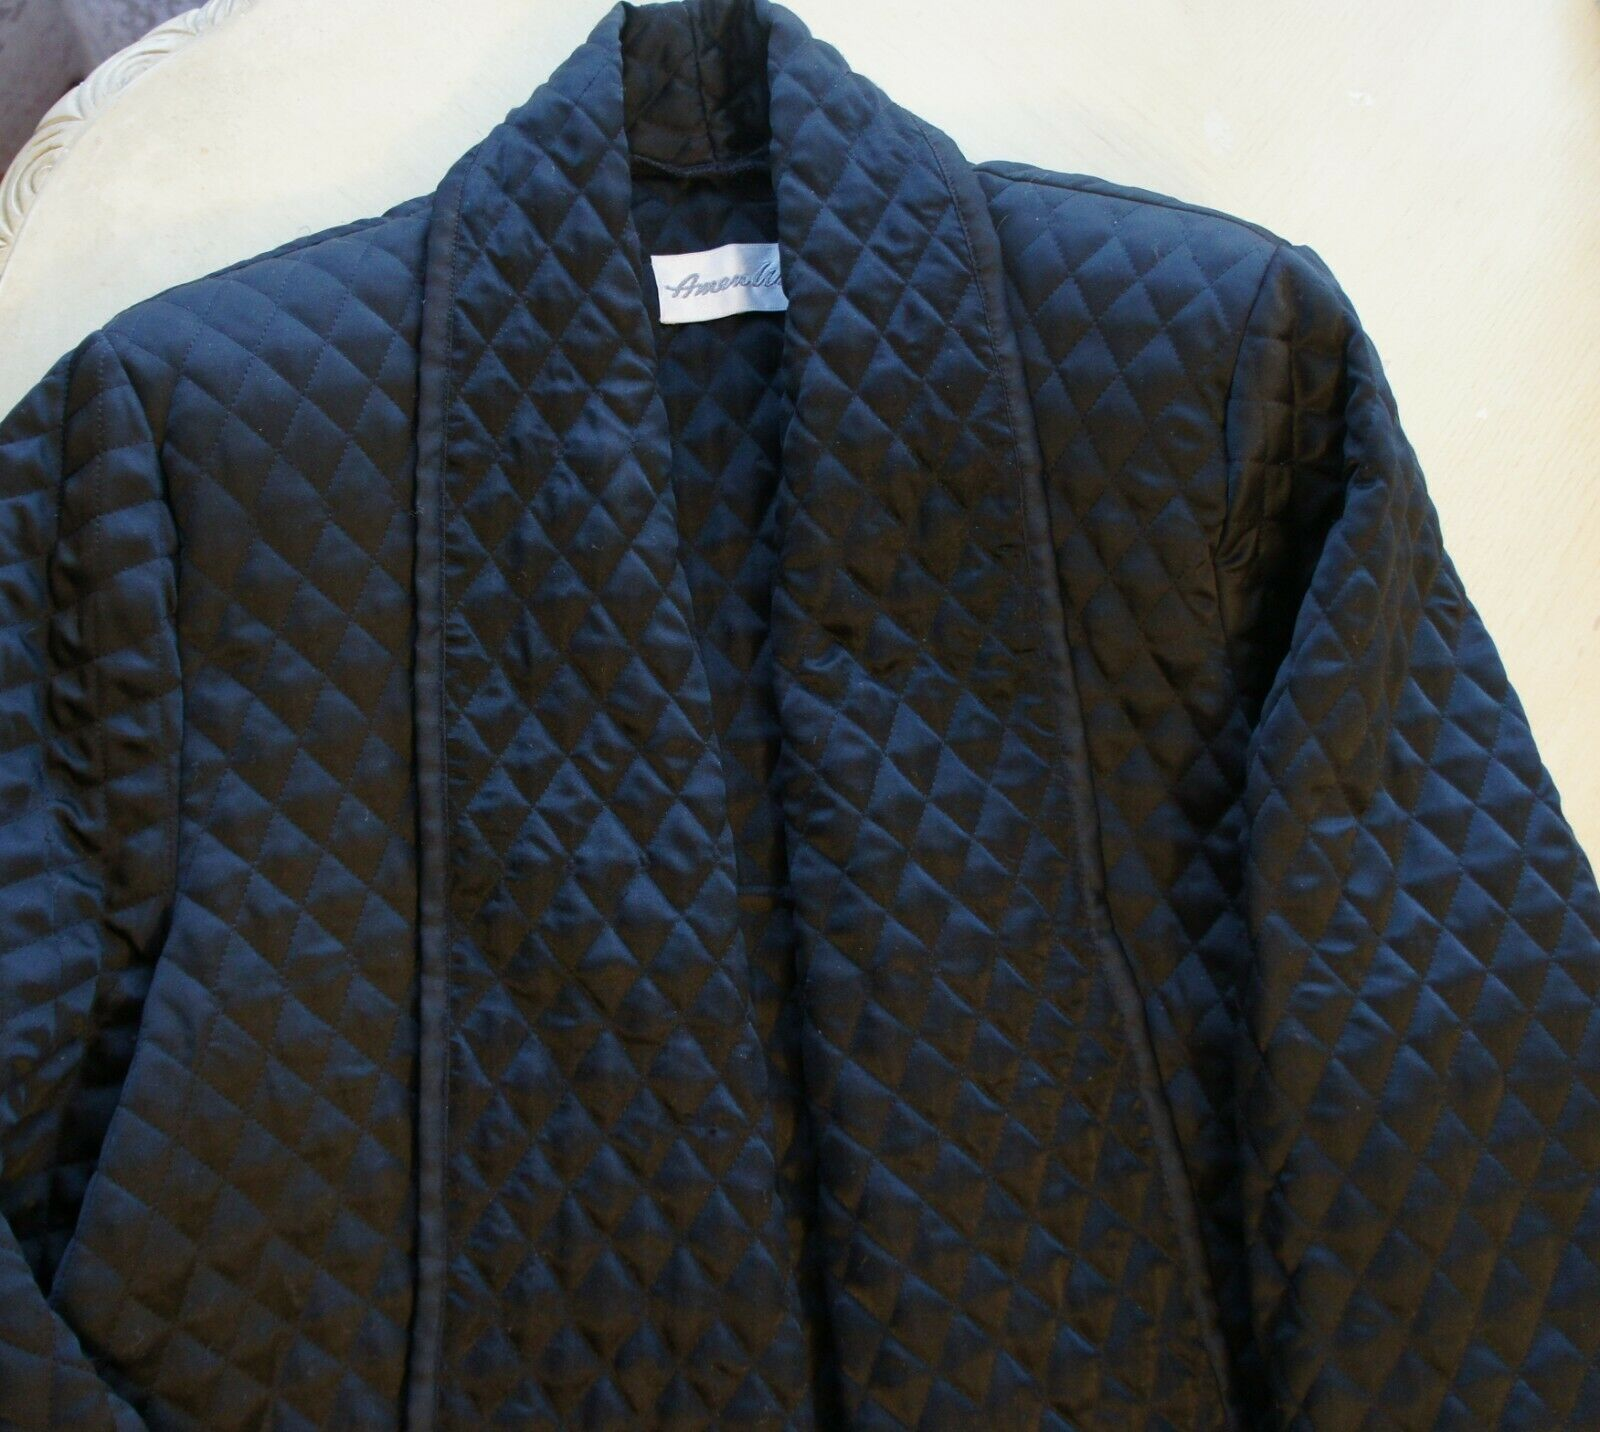 Auth Amen Wardy Black Quilted Open Jacket Sz M - image 6